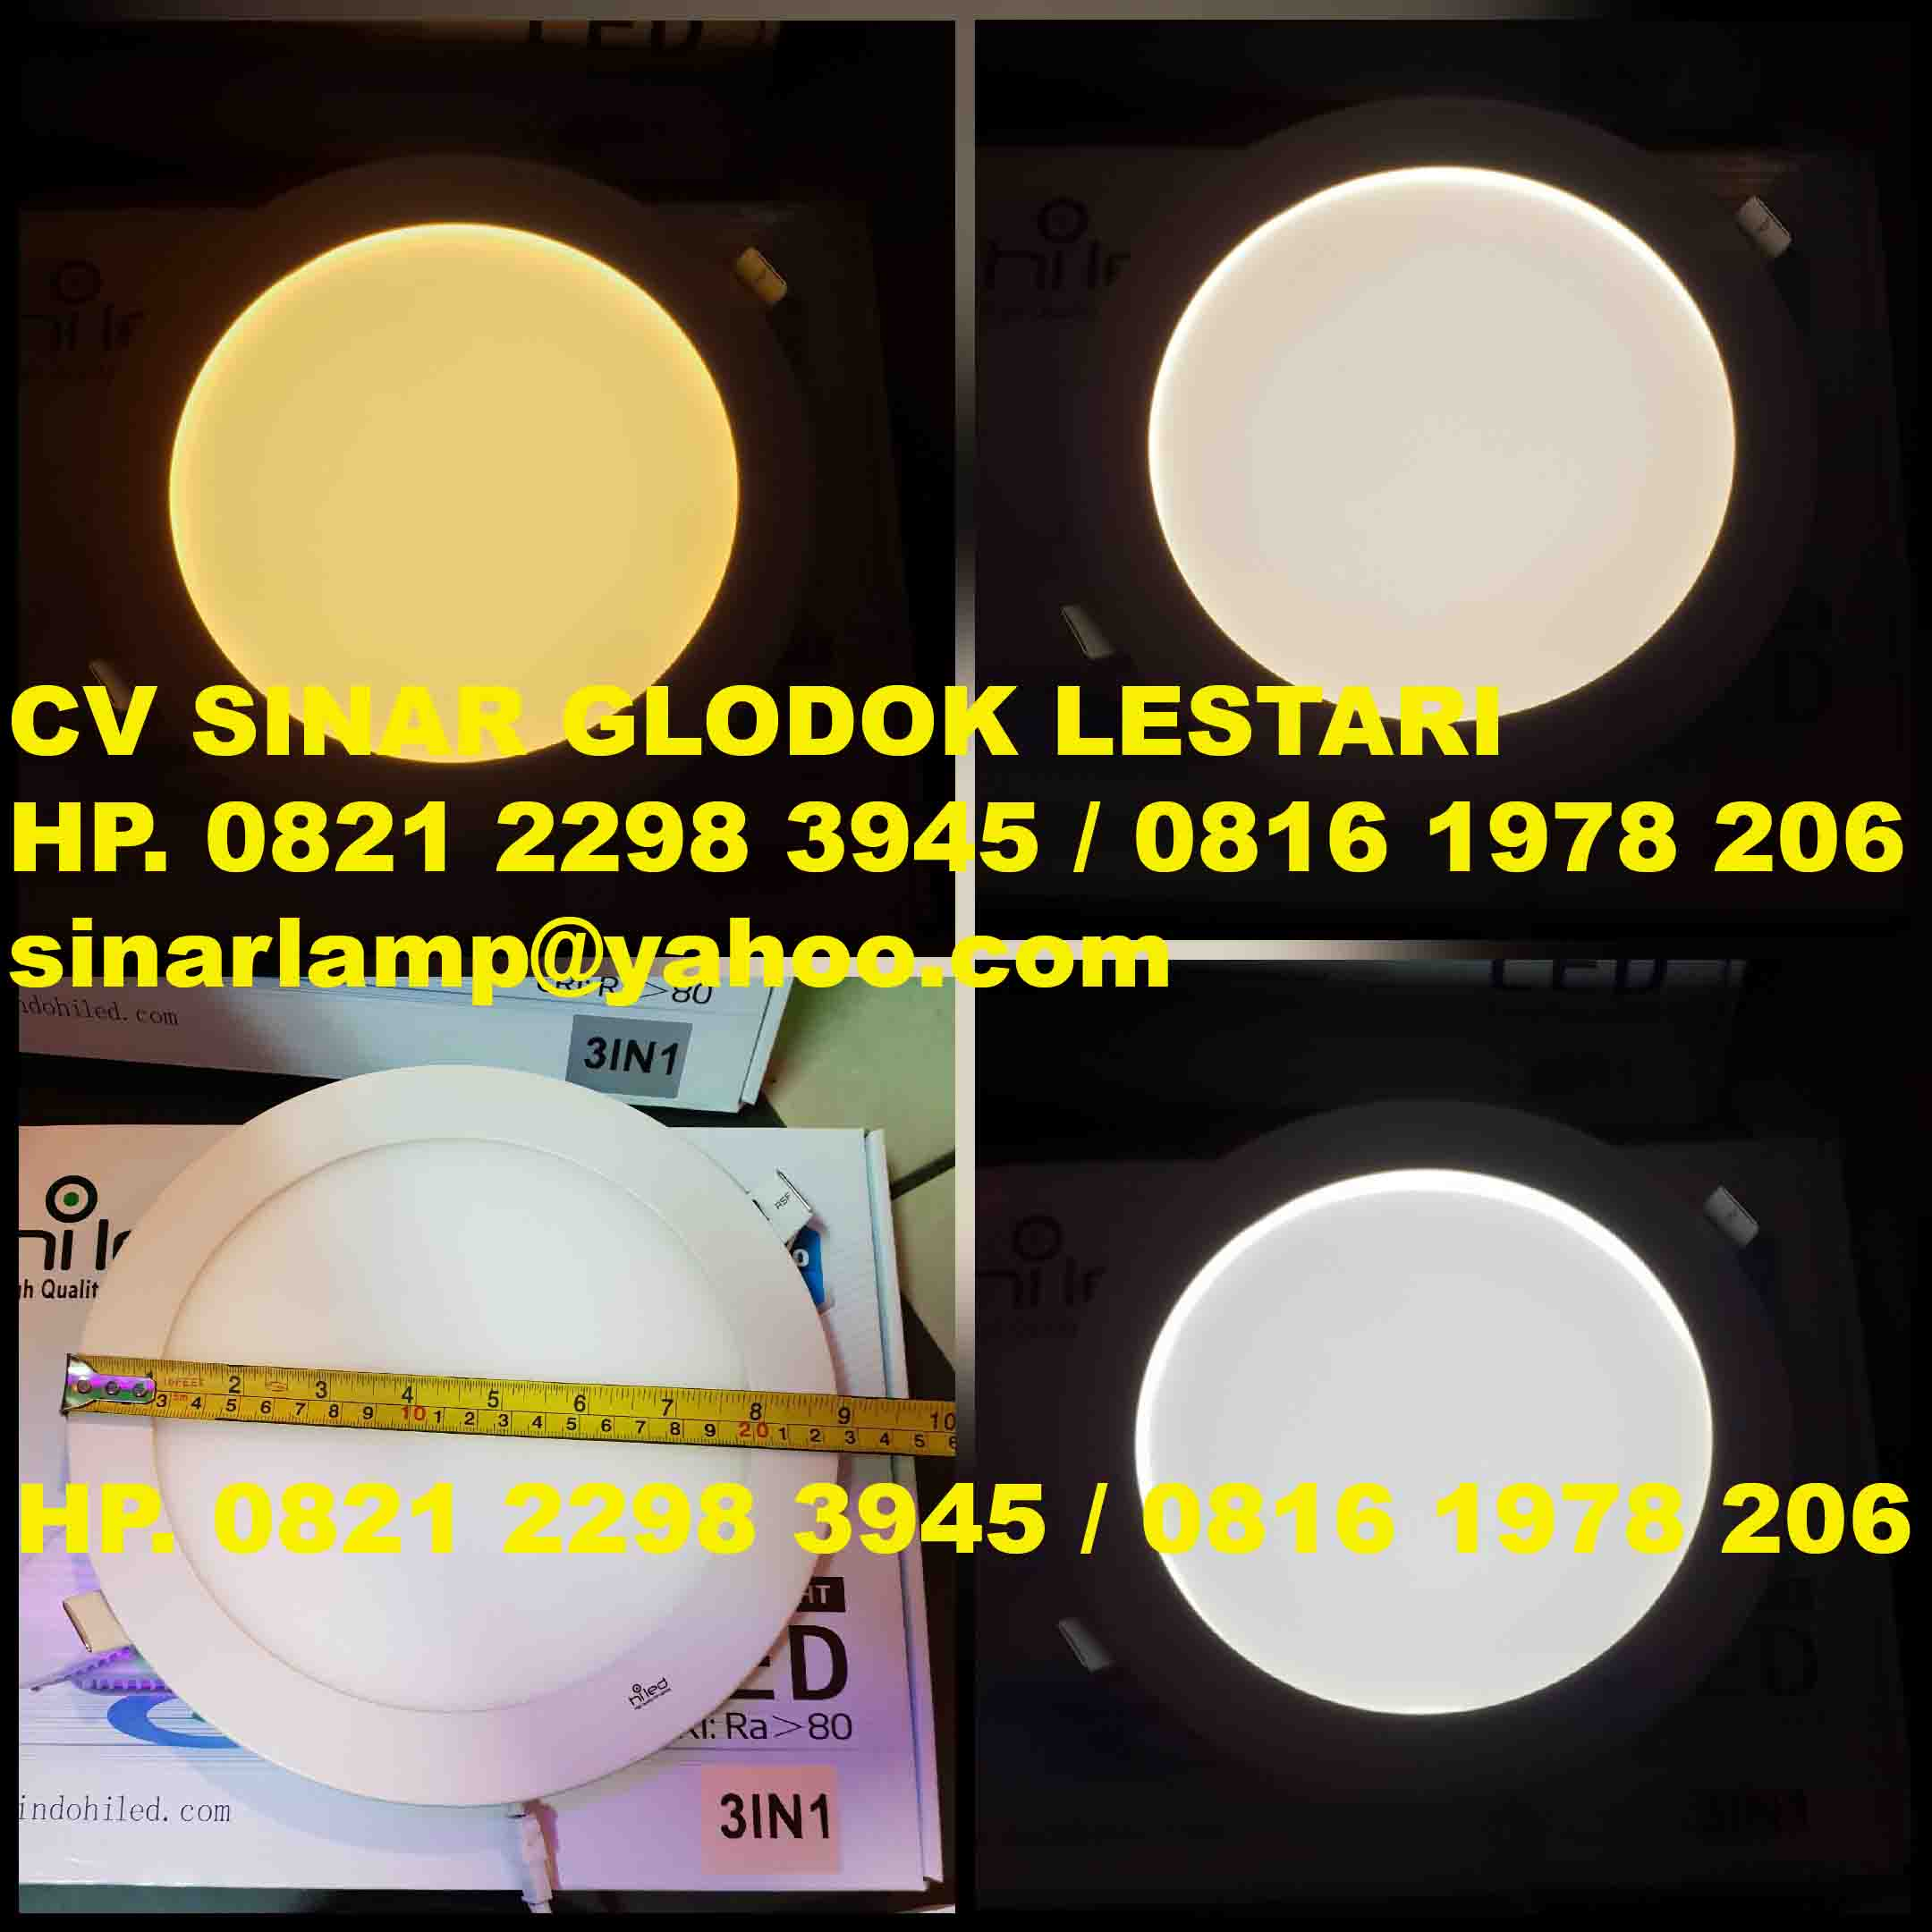 Lampu Downlight LED 12 watt 3 IN 1 6500K 4000K 3000K